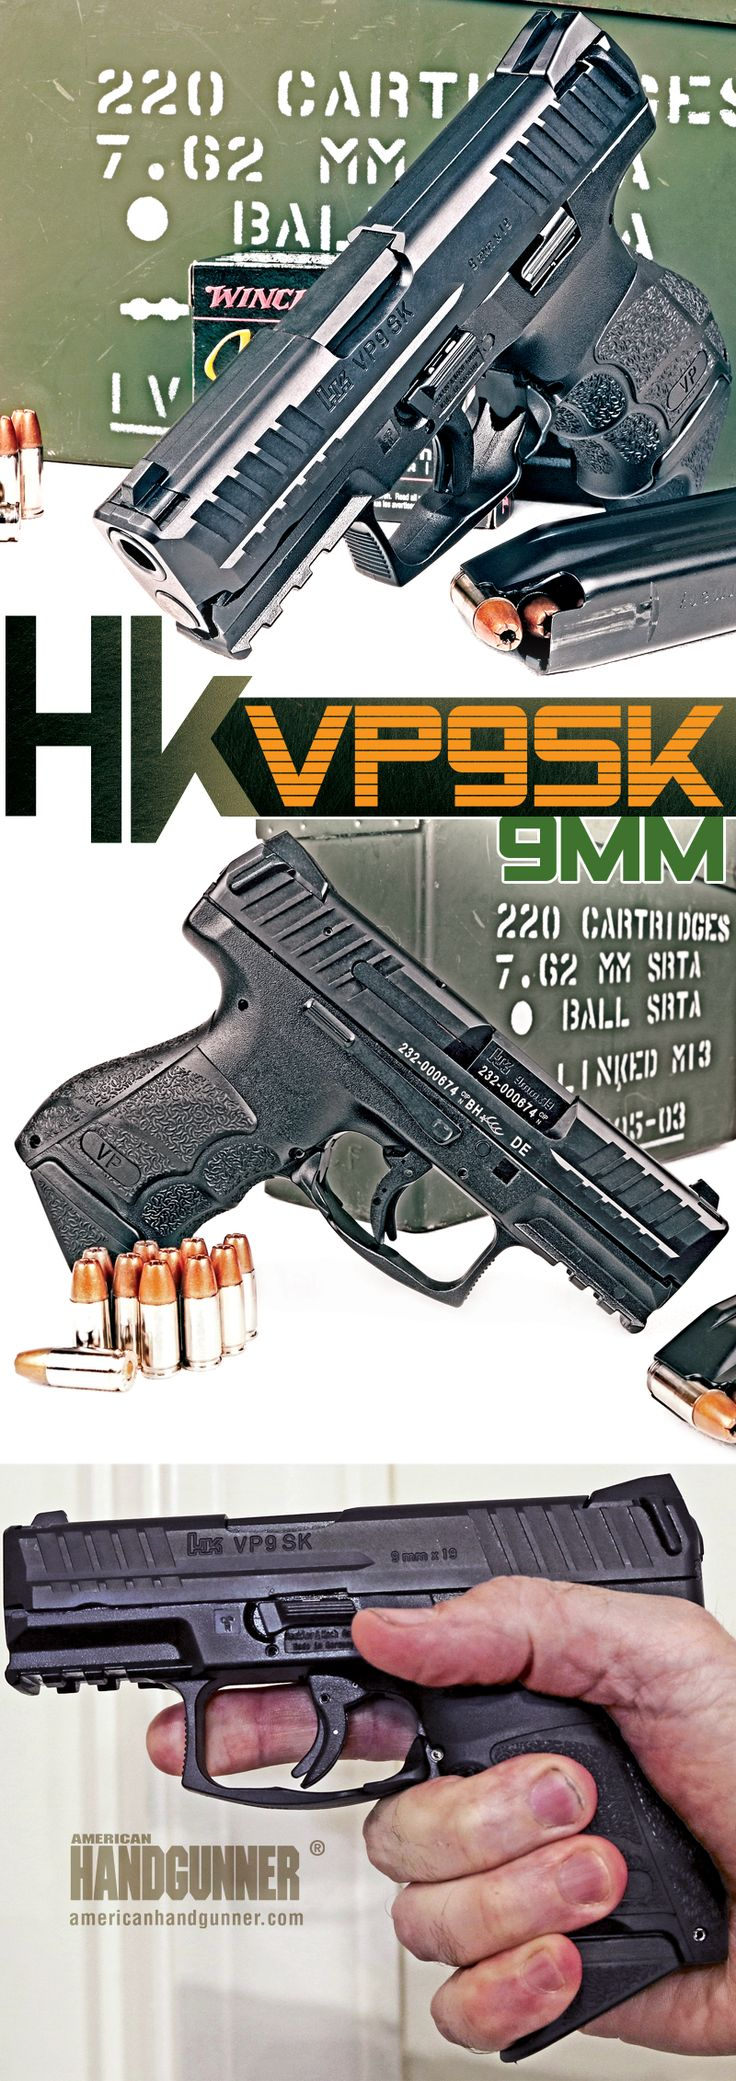 HK VP9SK 9mm   By Will Dabbs, MD   The Teutonic People's Pocket Pistol   The new HK VP9SK takes all that is righteous and wholesome about the superlative HK VP9 and shrinks it down into something more portable.   © American Handgunner 2018